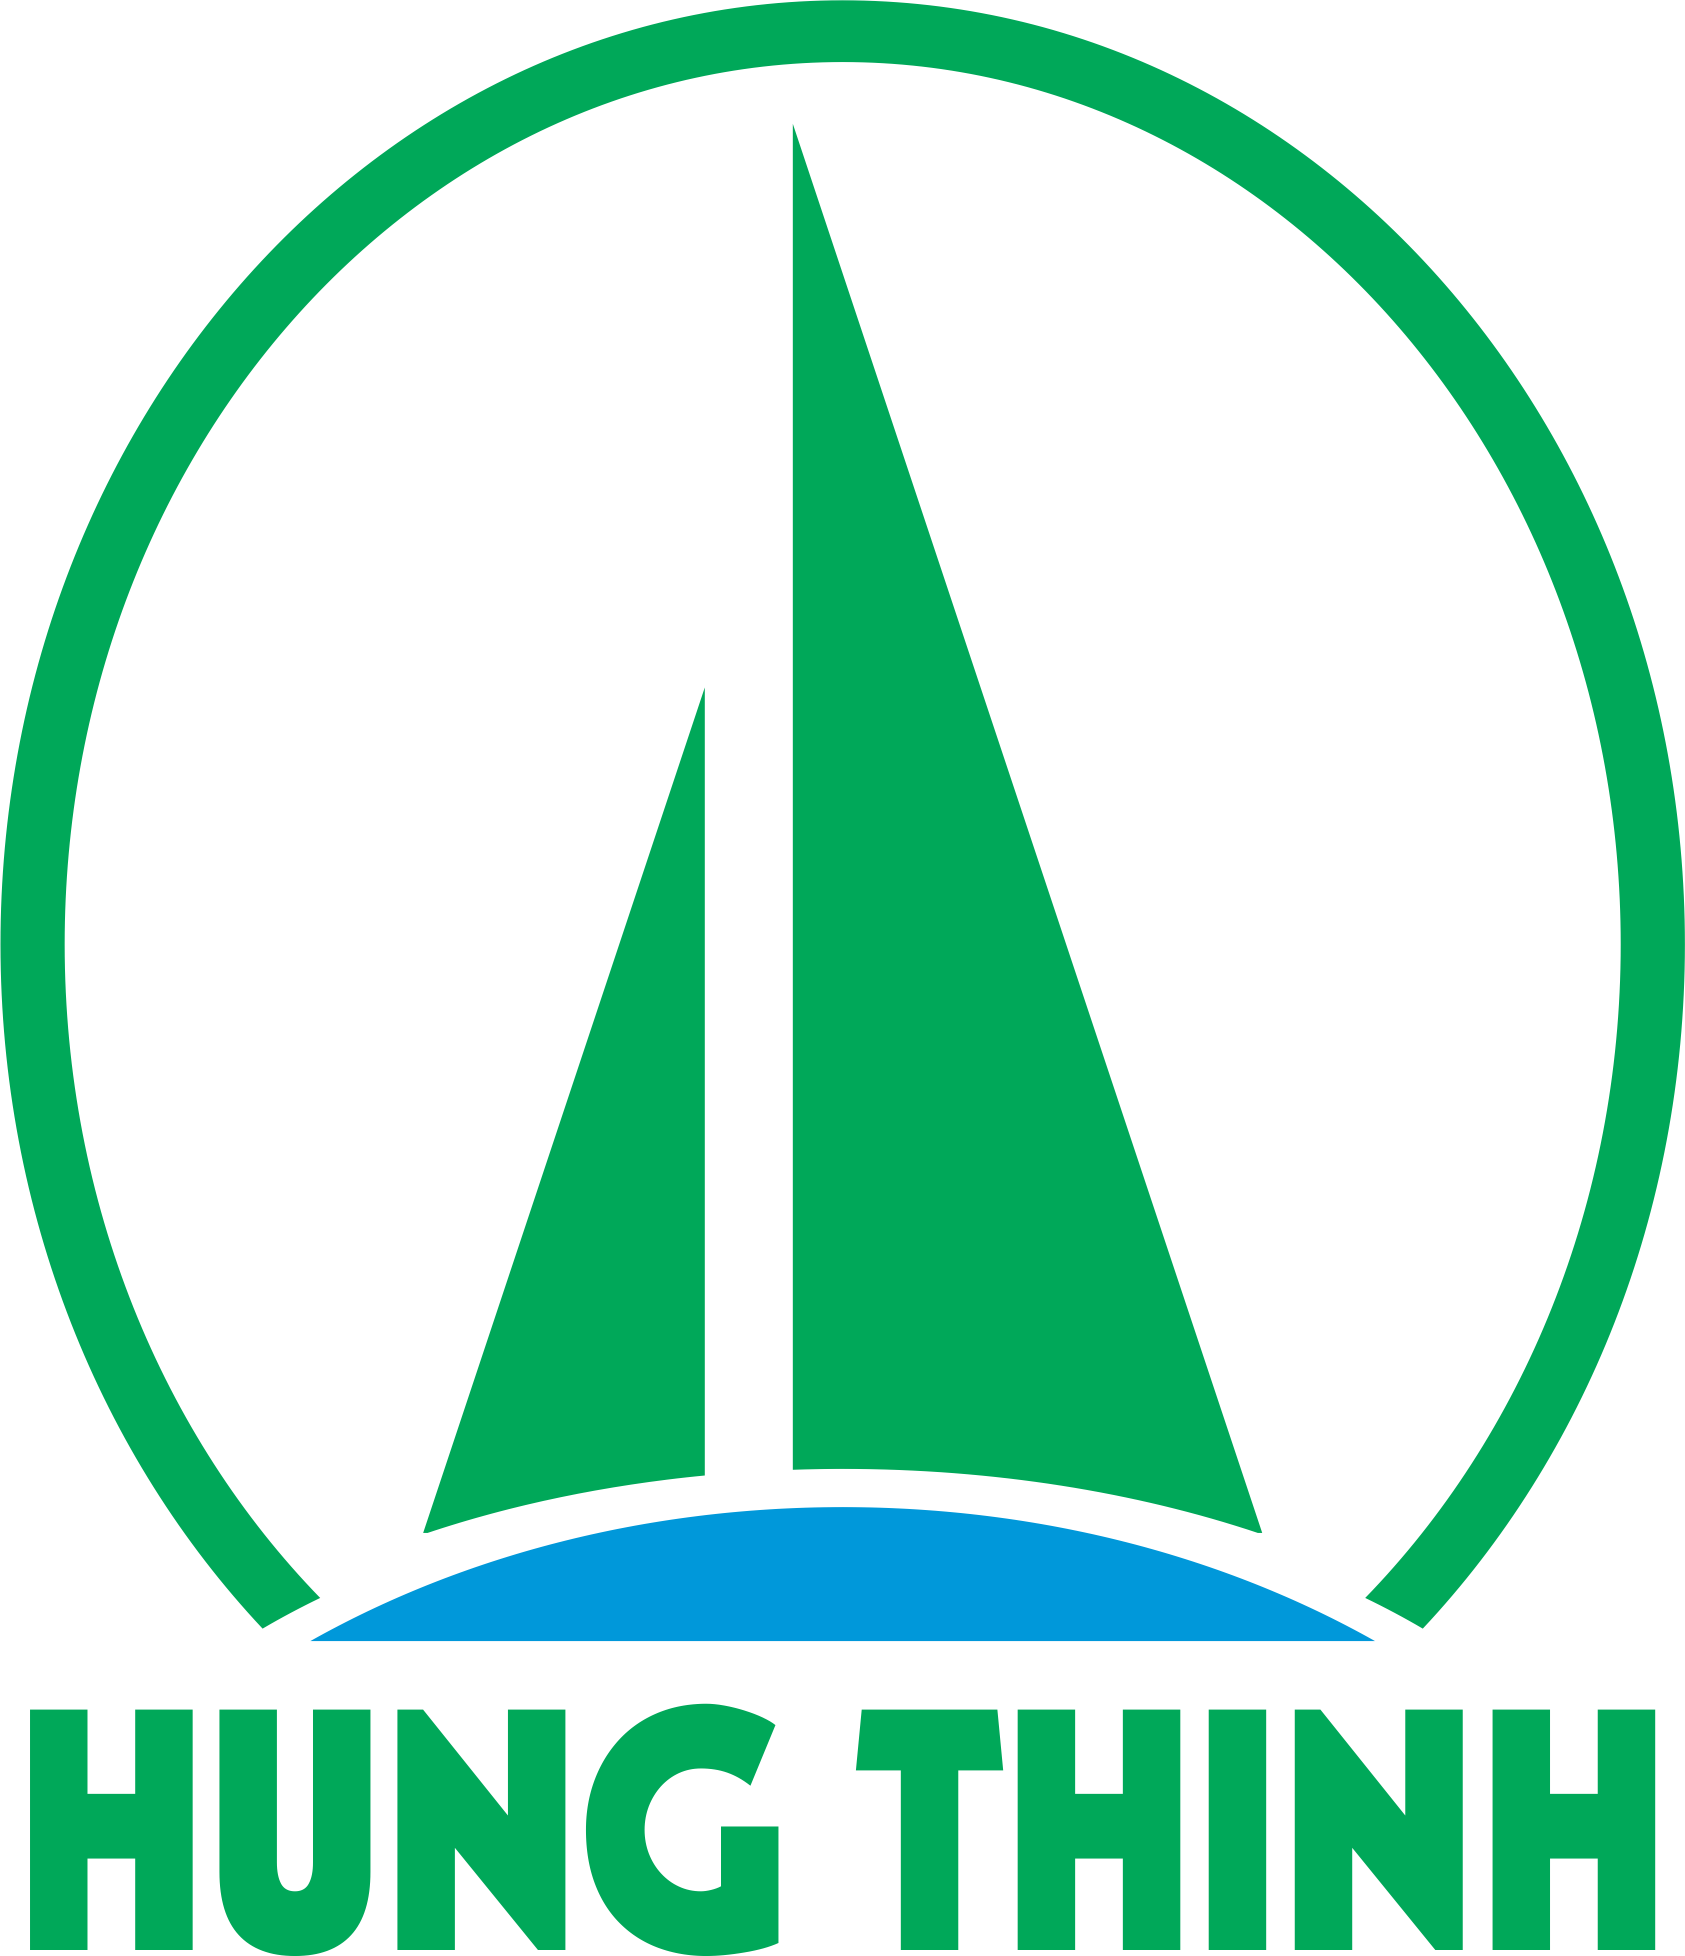 Hung thinh training and Trade company limited logo